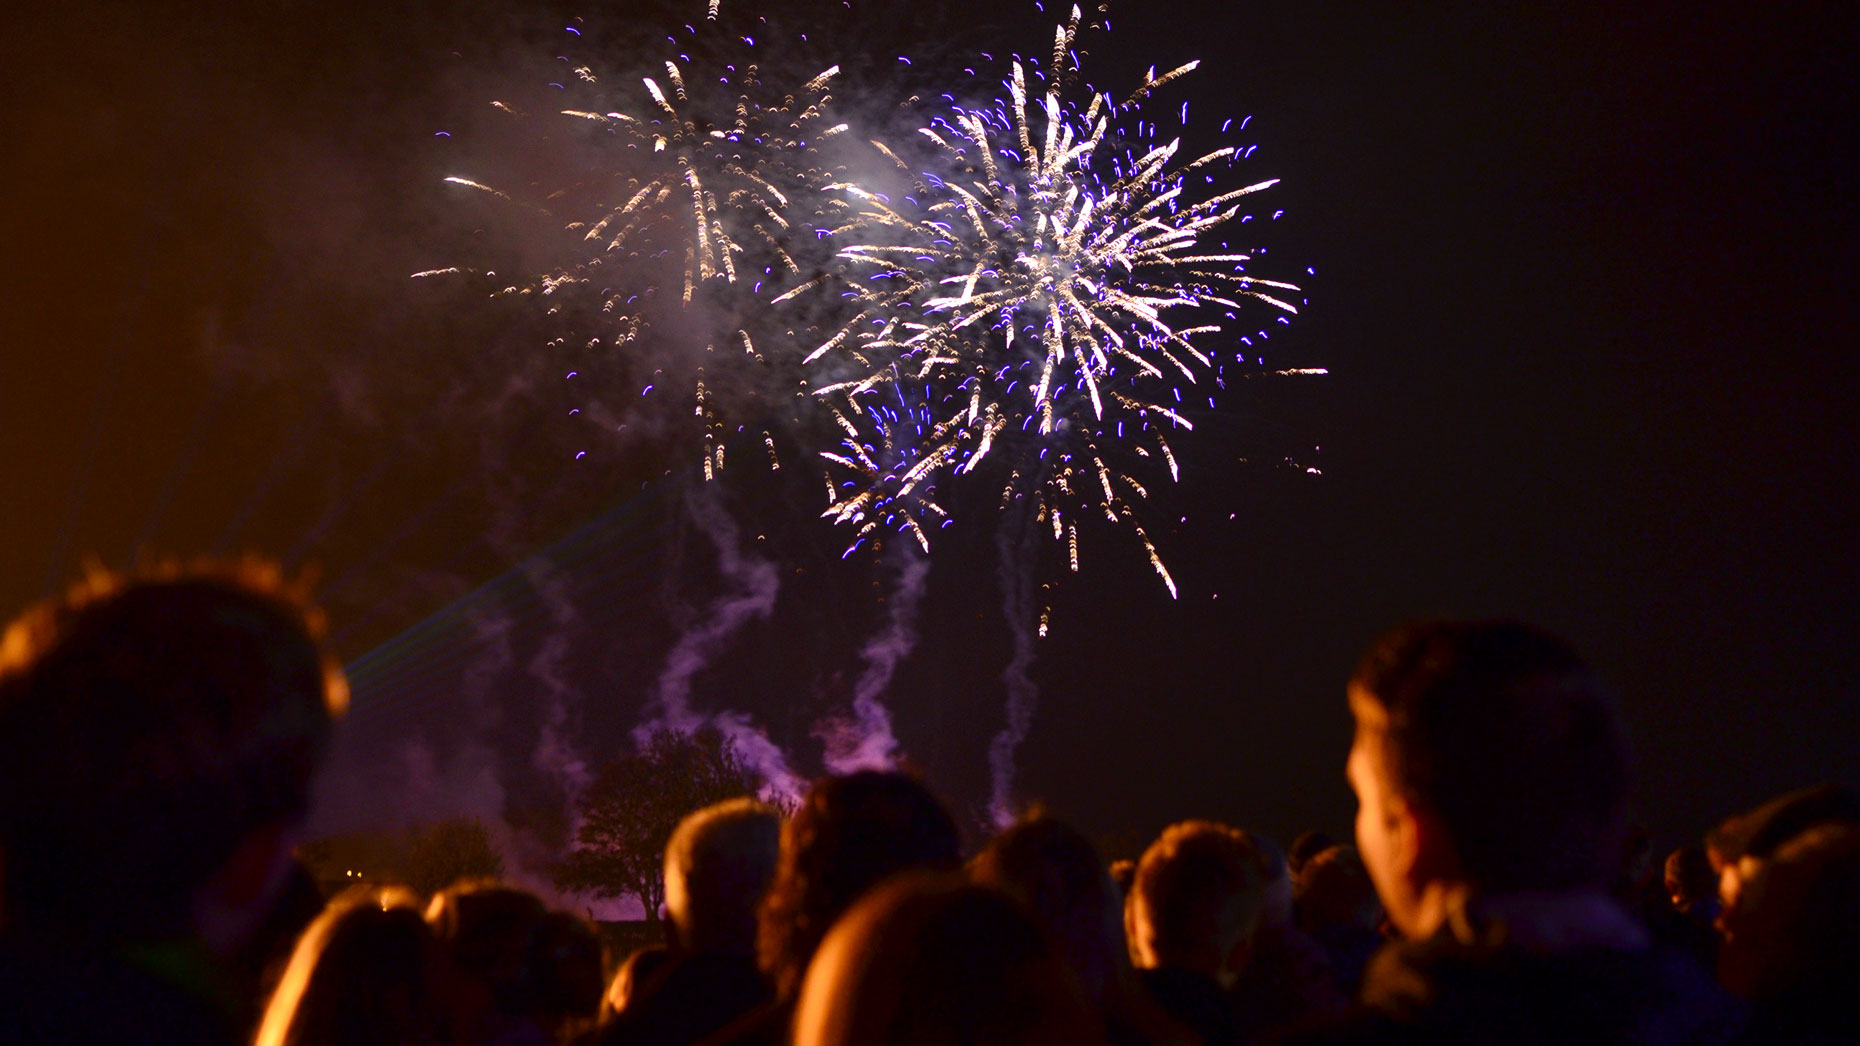 Fireworks-at-the-Showground-08-11-2013-SS-2